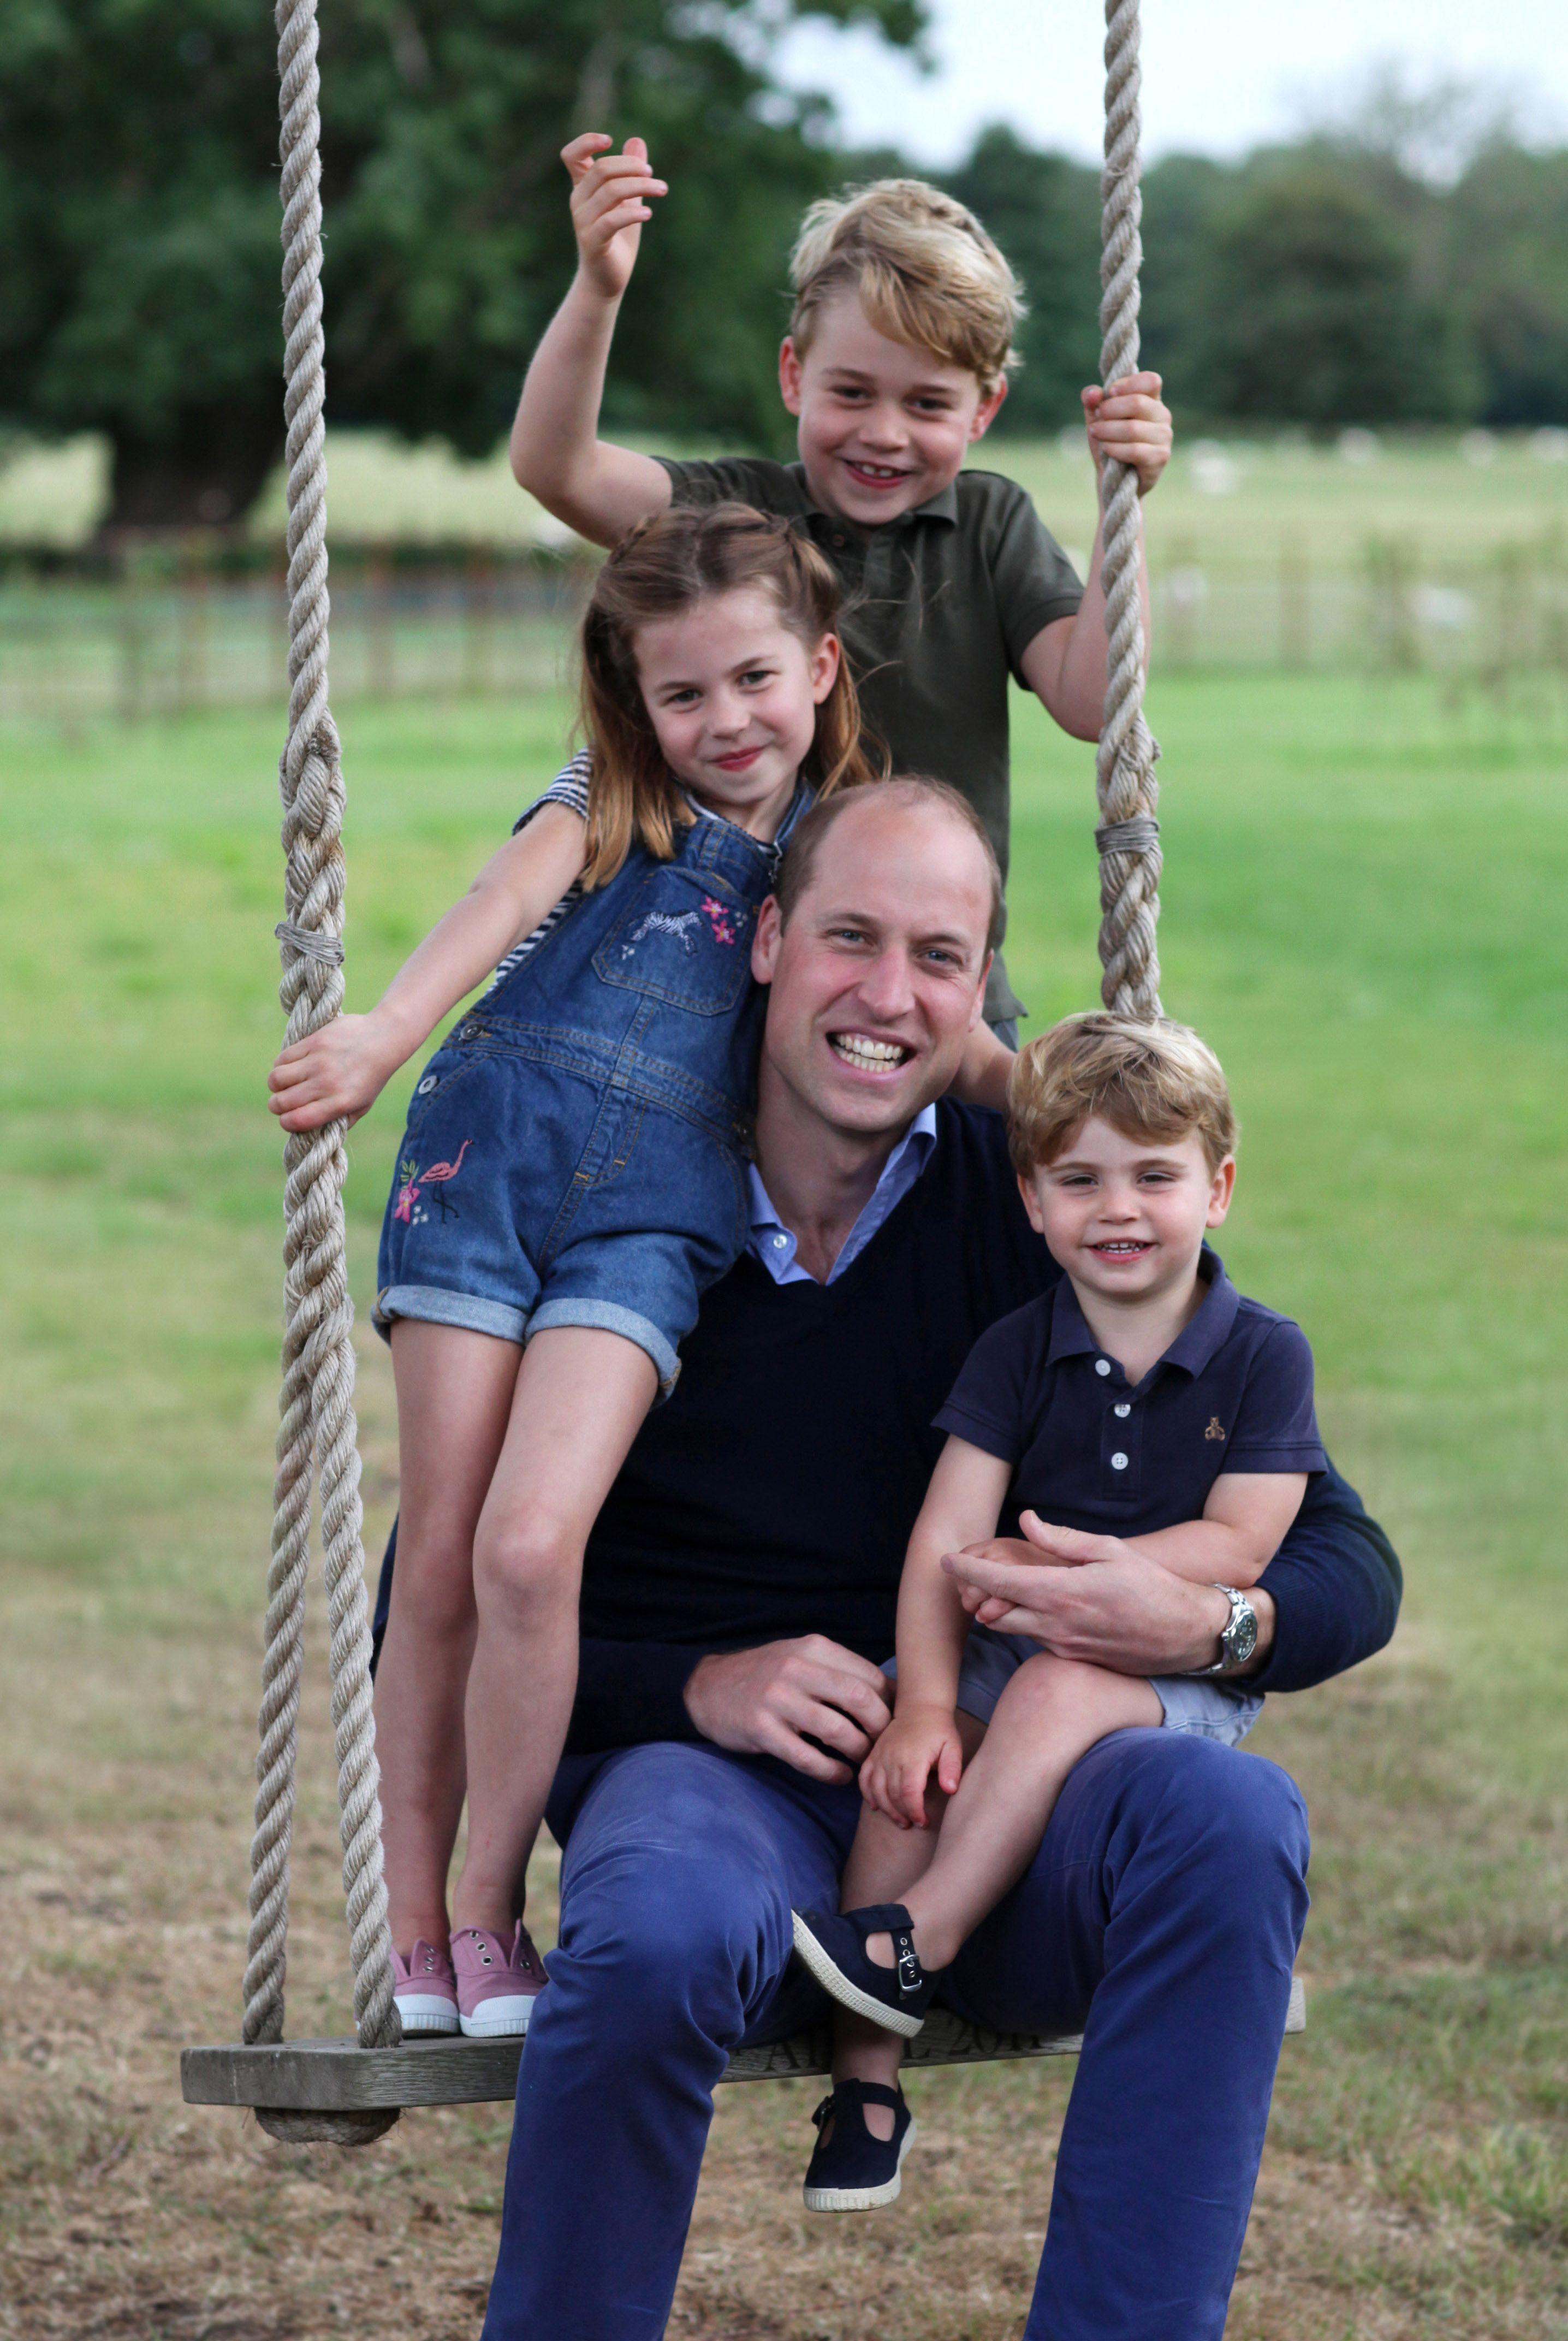 Prince William on a swing with Prince George, Princess Charlotte, and Prince Louis to mark both his birthday and Fathers Day on June 20, 2020, at Kensington Palace | Photo: Duchess Kate/Kensington Palace/Getty Images